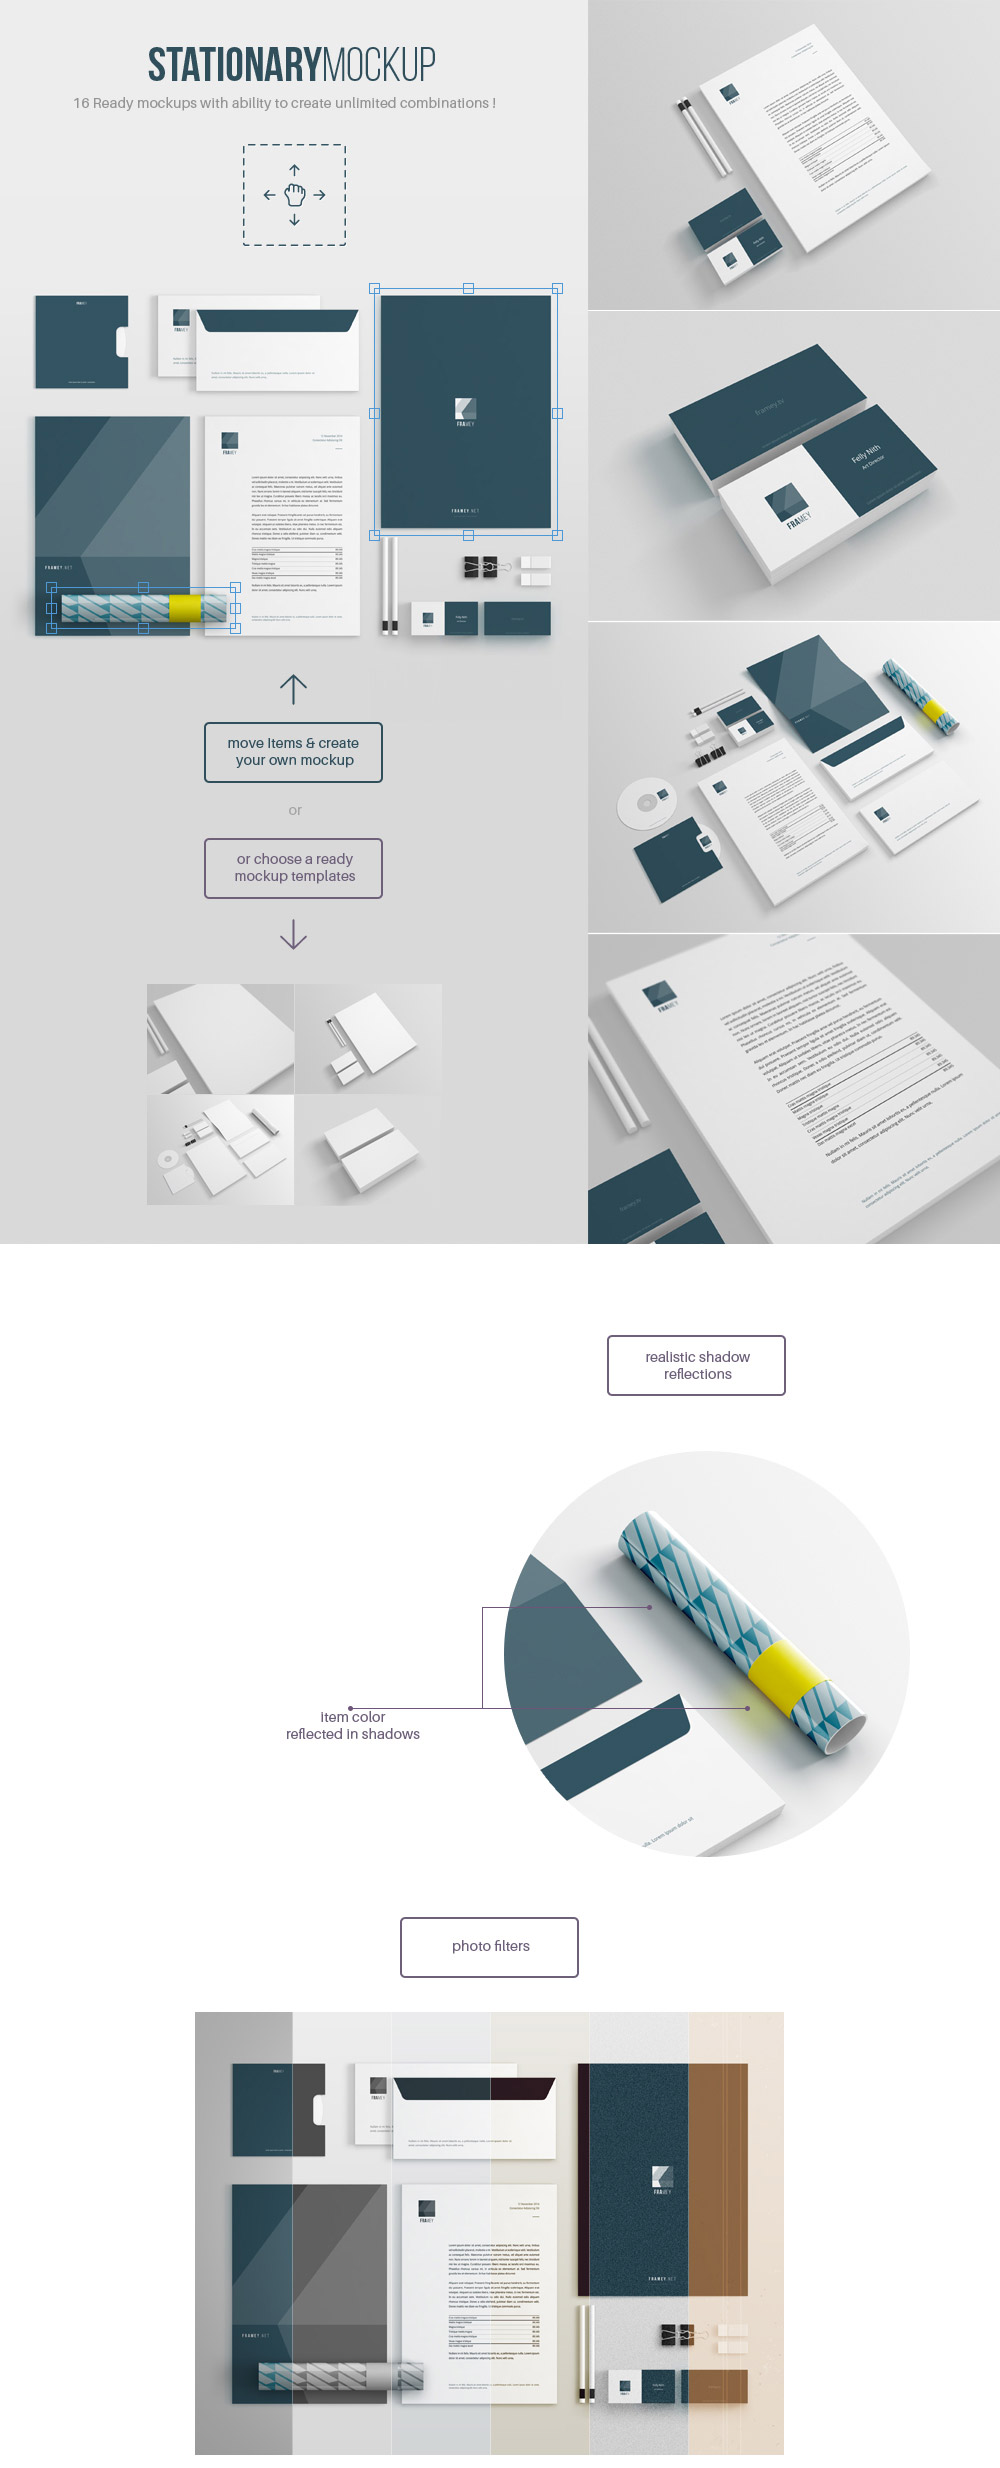 http://www.graphicsfuel.com/wp-content/uploads/2014/11/free-stationery-mockup-fullview.jpg